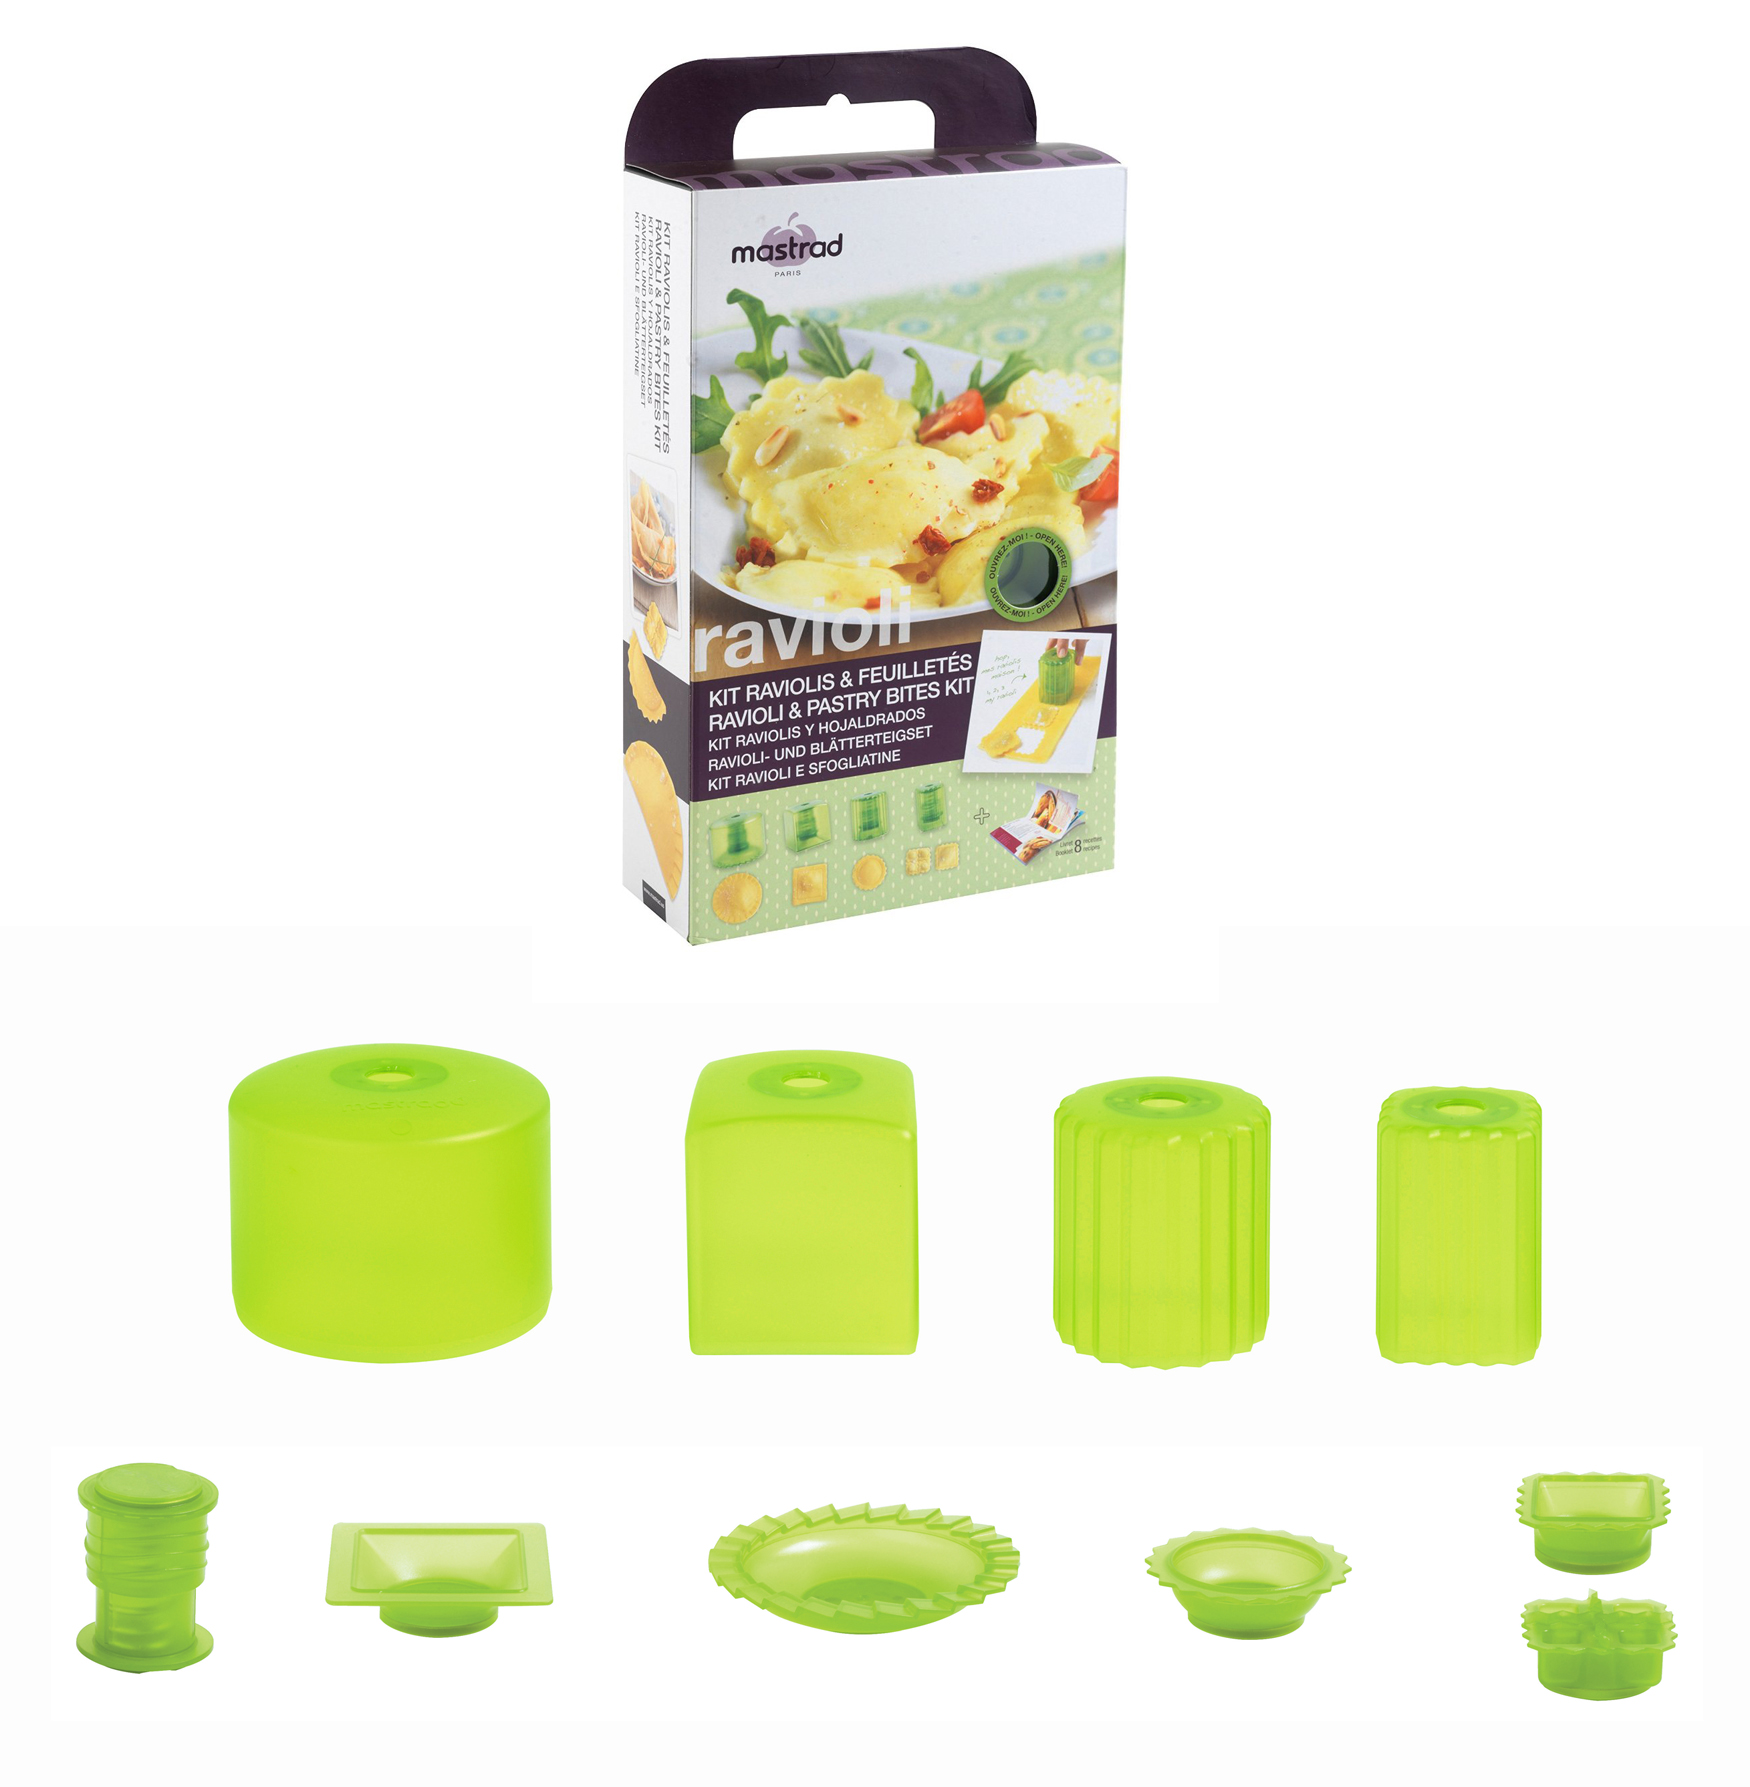 Mastrad ravioli pastry bites gift set italian kitchen for Italian kitchen gifts